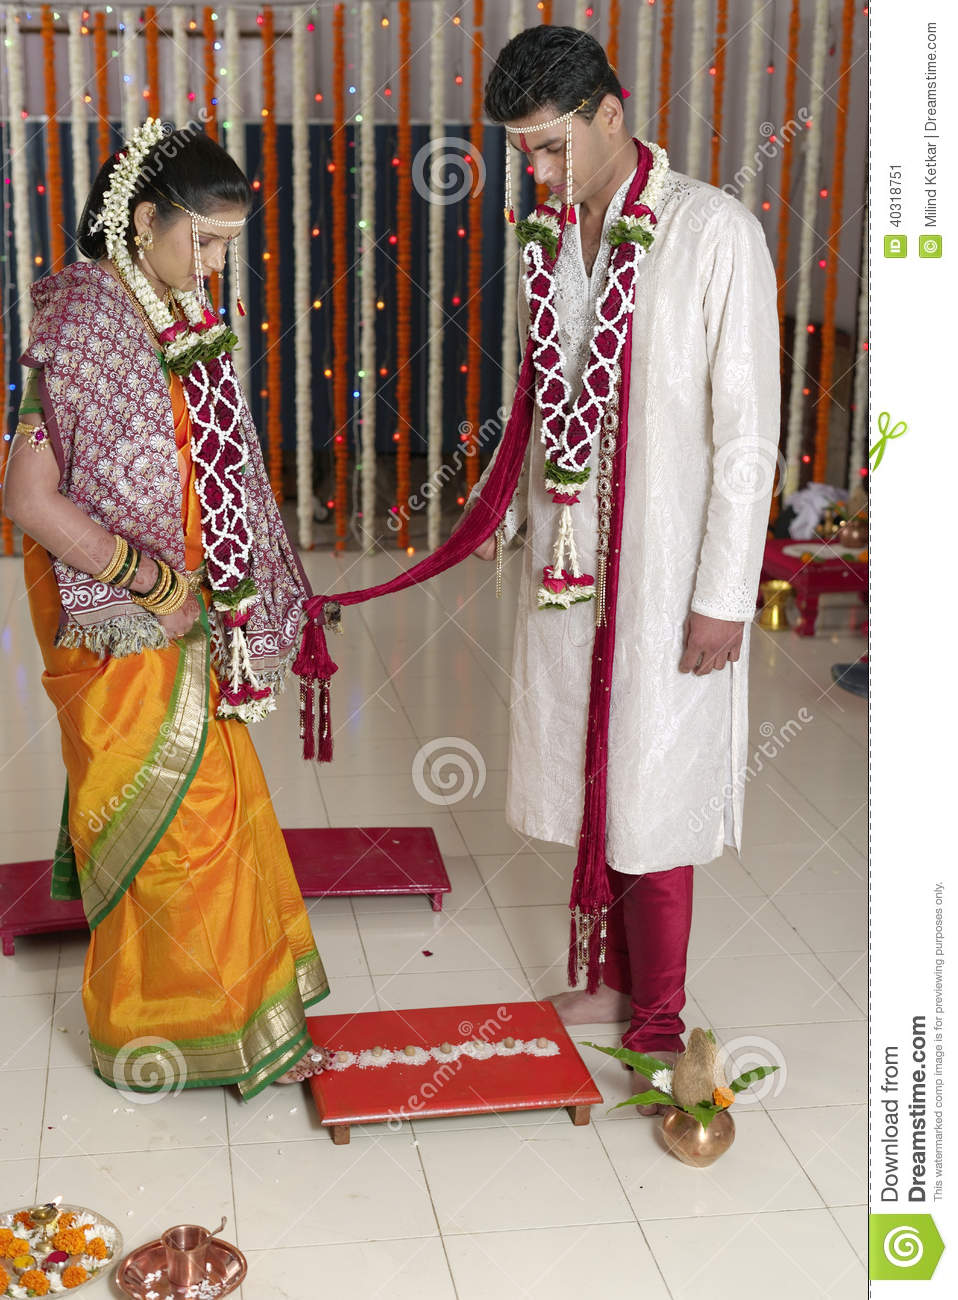 symbols and traditions of hindu wedding Join us as we explore every aspect of buddhist marriage traditions of hindu traditions as well as regional wedding local traditions and cultural symbols.